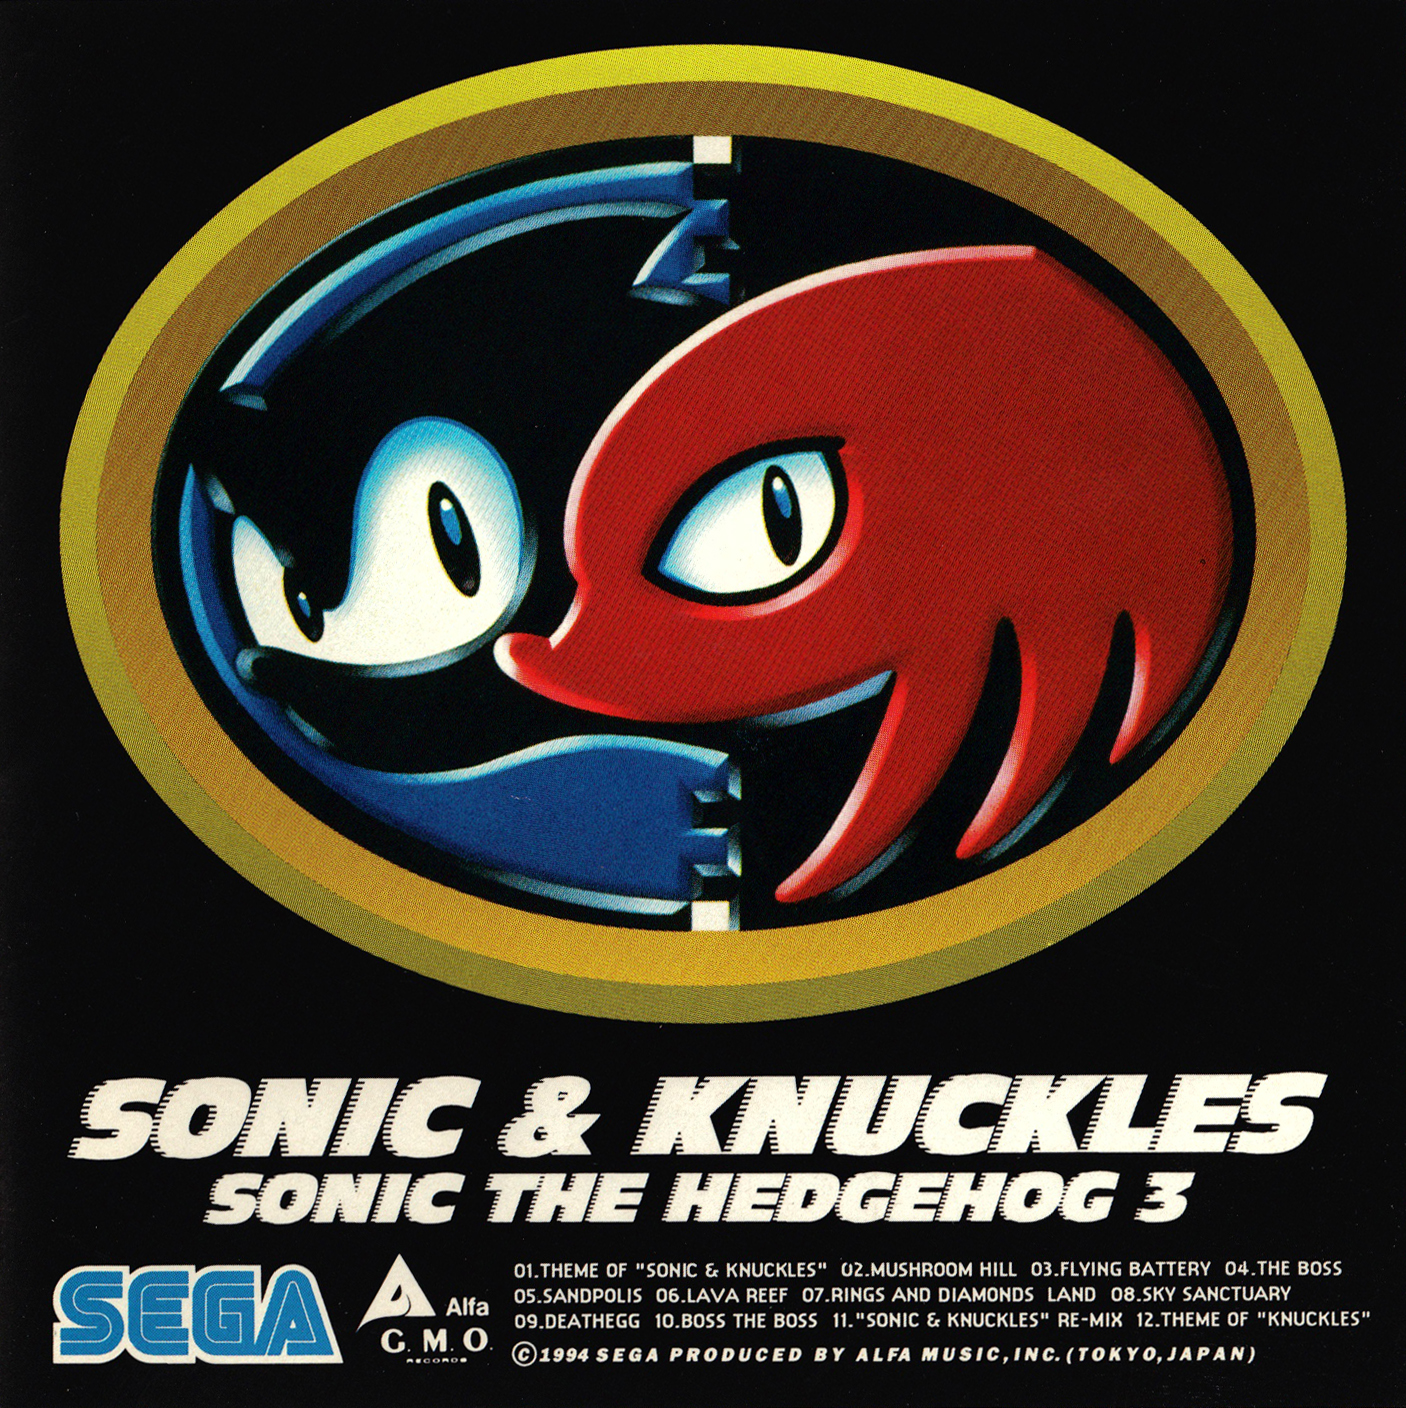 Sonic & Knuckles • Sonic the Hedgehog 3 | Sonic News Network